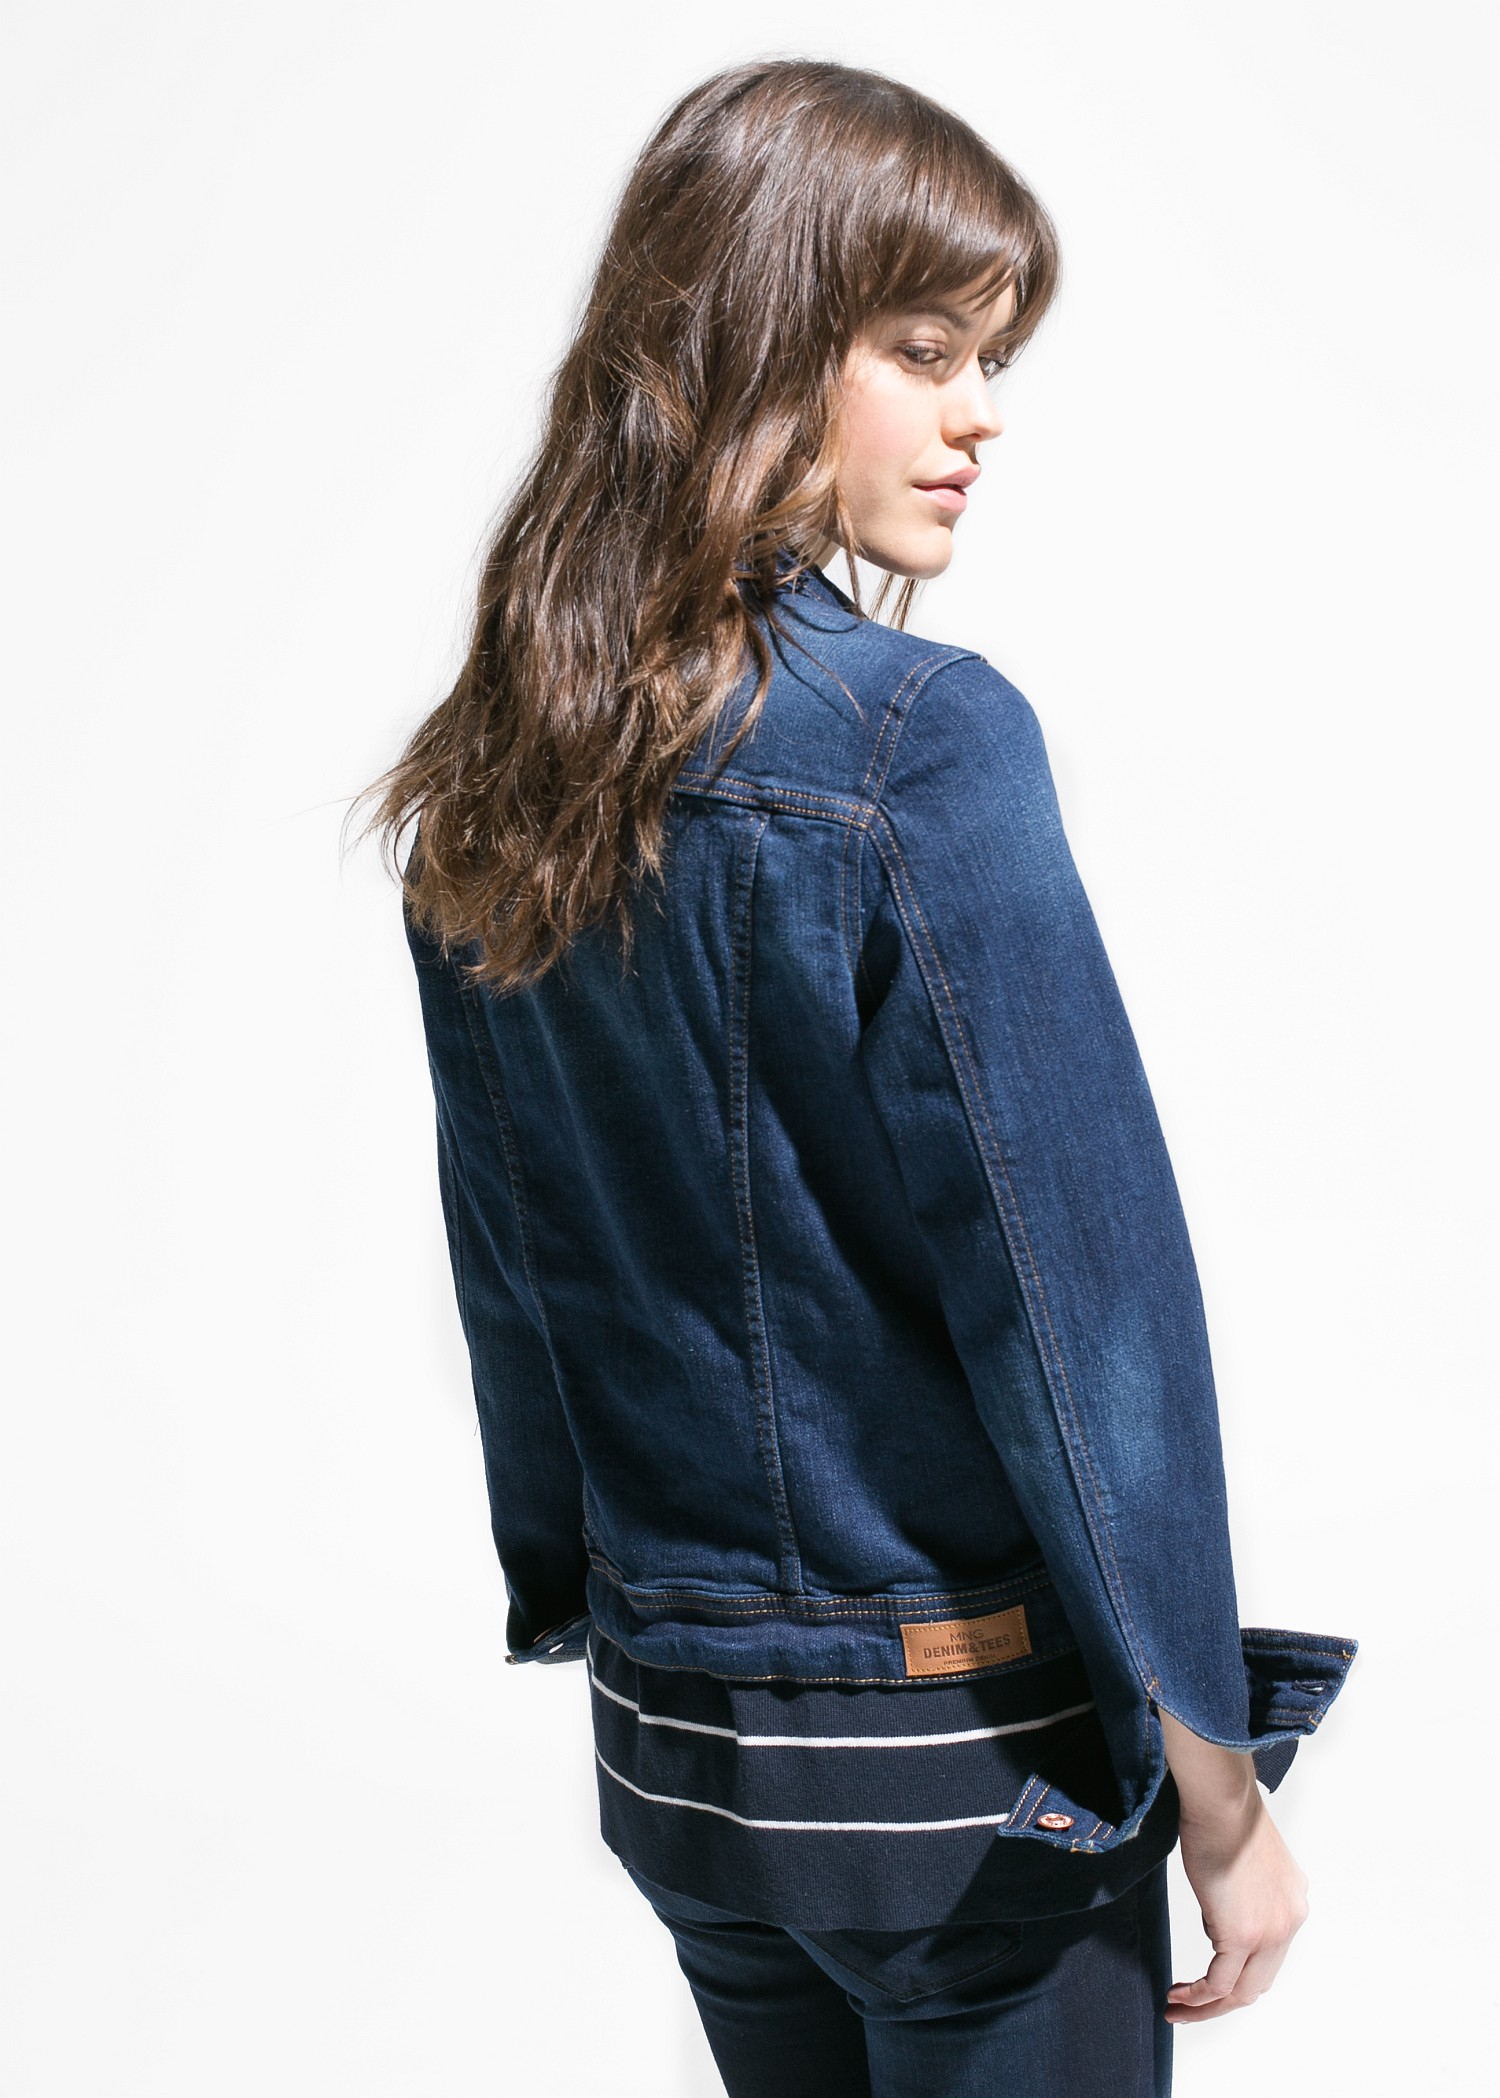 b37c989fa5 Lyst - Mango Dark Denim Jacket in Blue